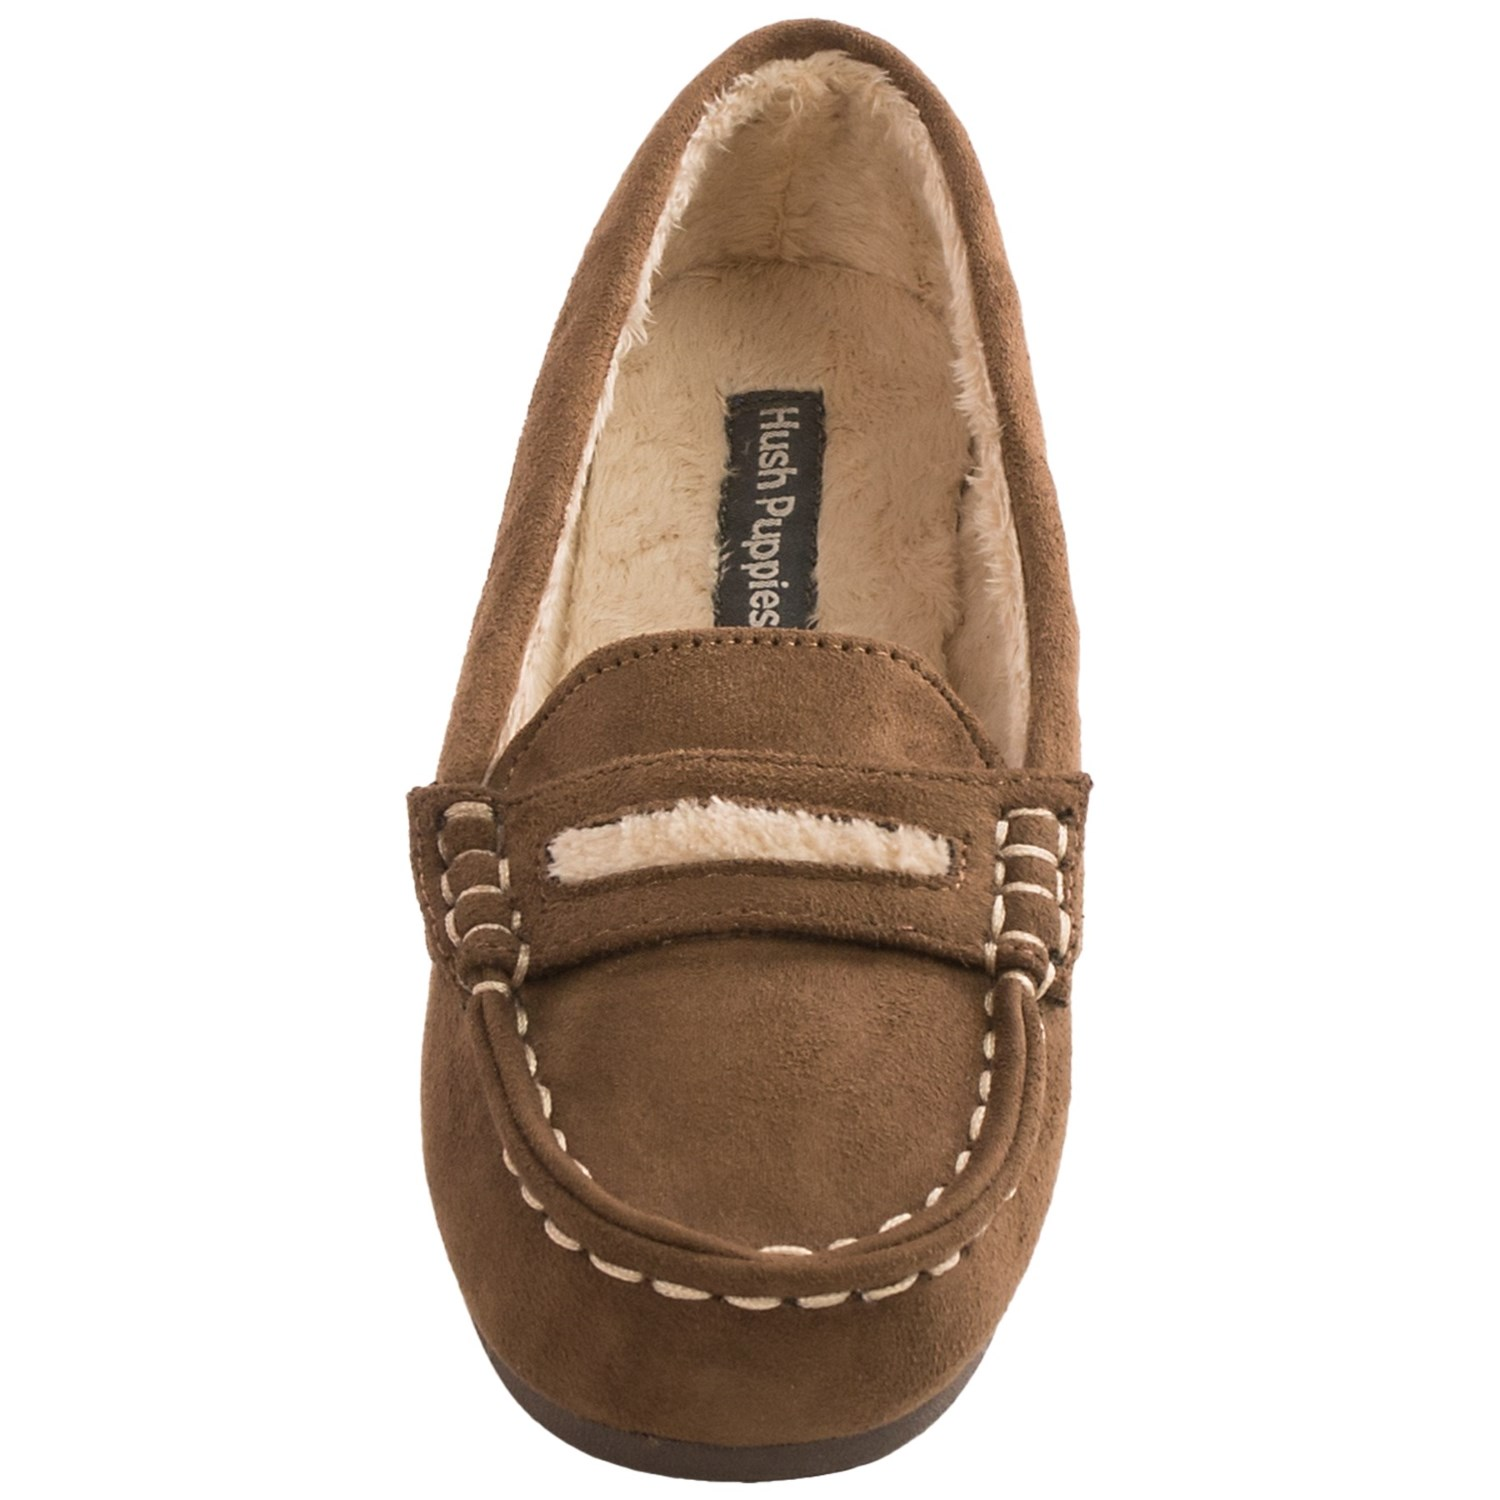 Hush Puppies Dress Shoes Review